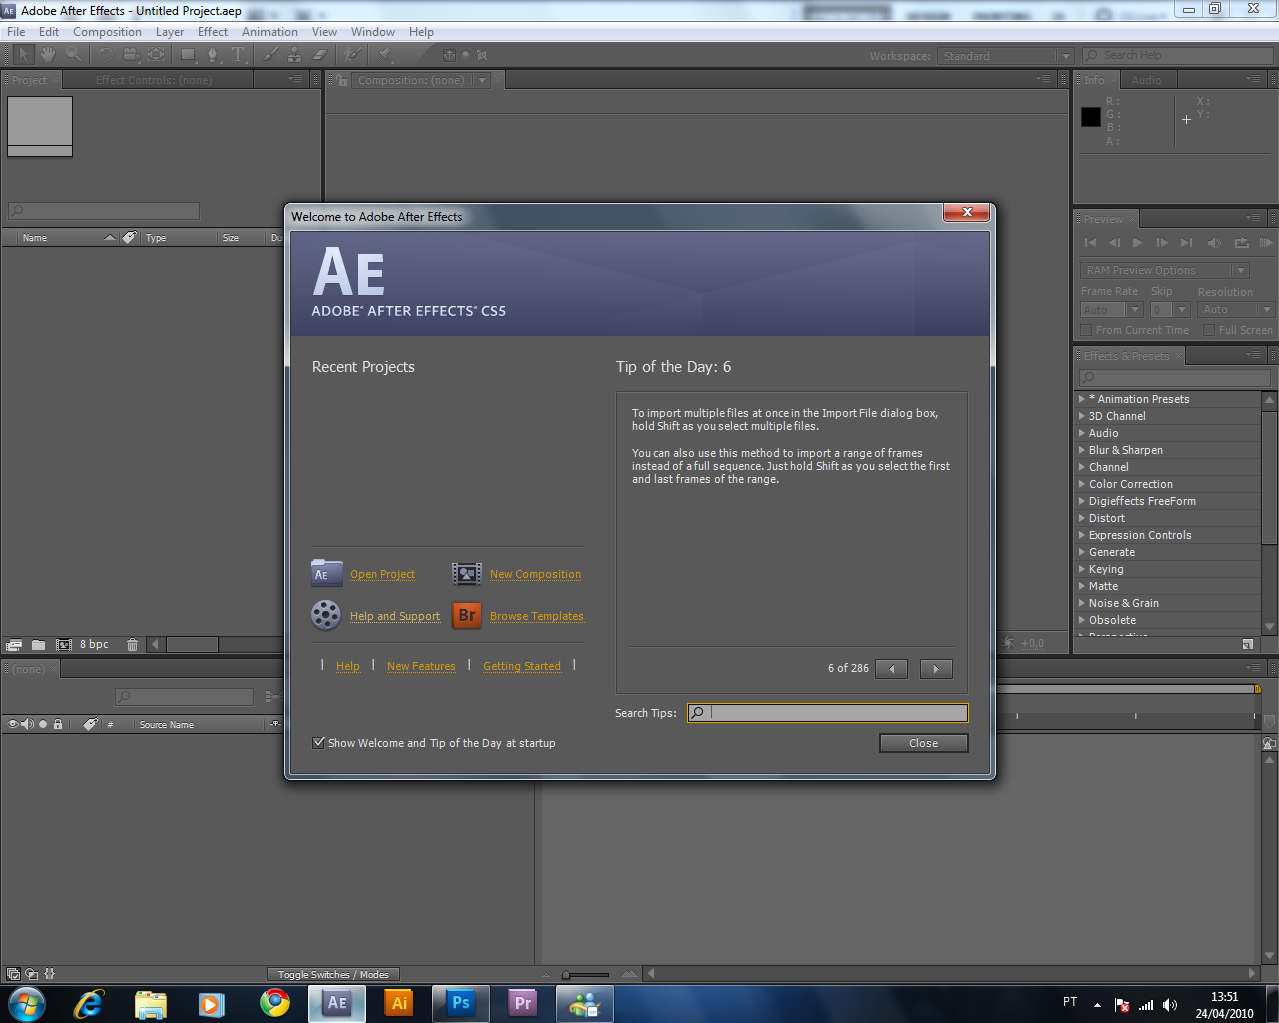 скачать adobe after effects cs6 32 bit rus с торрента